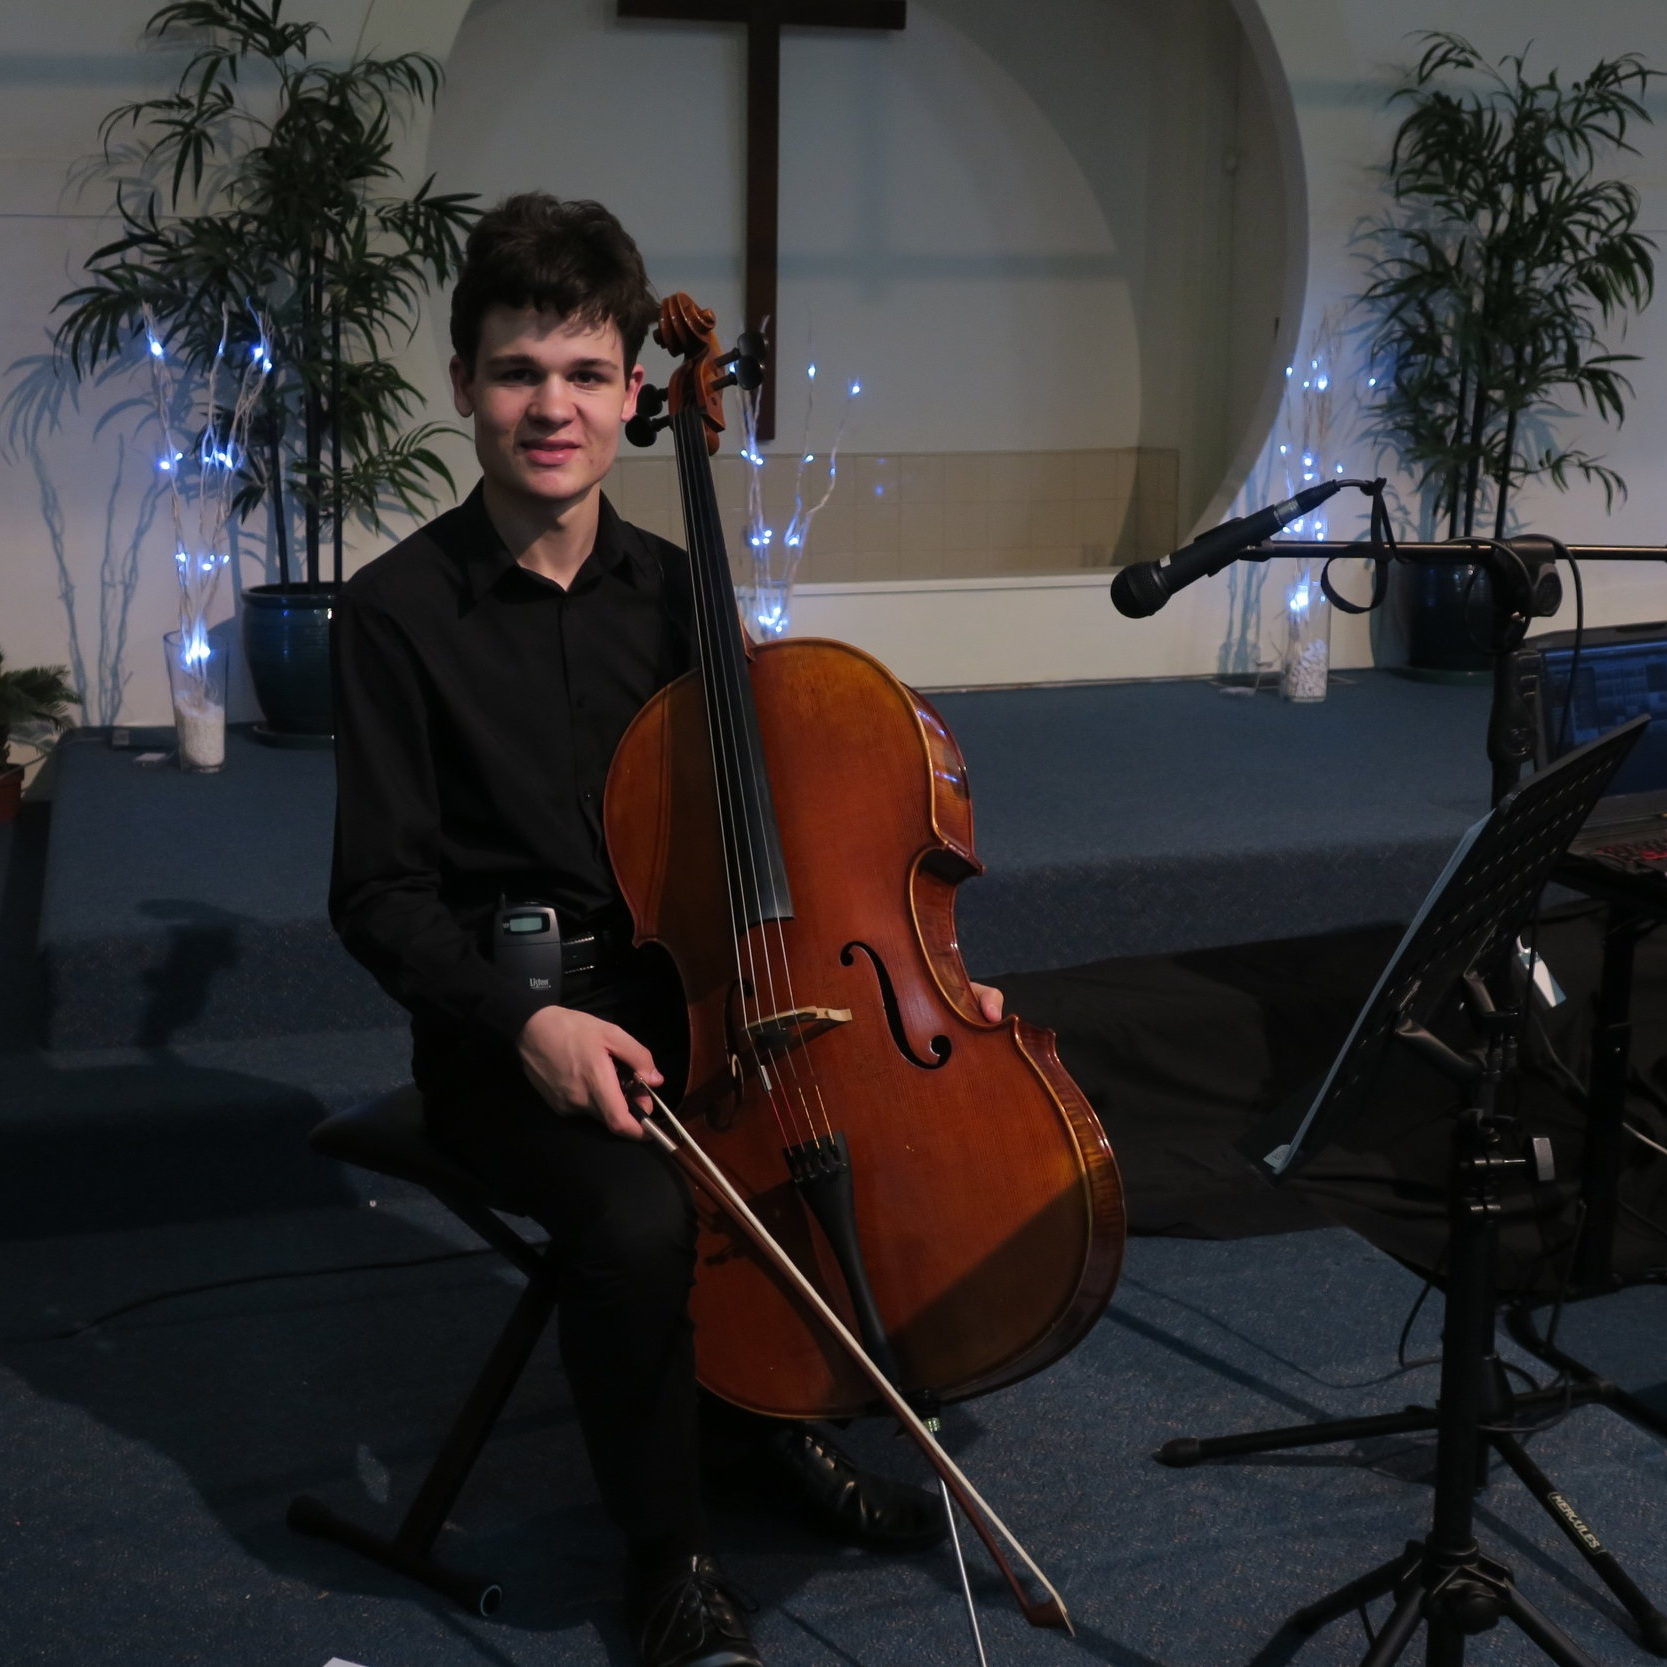 Isaac with cello at concert